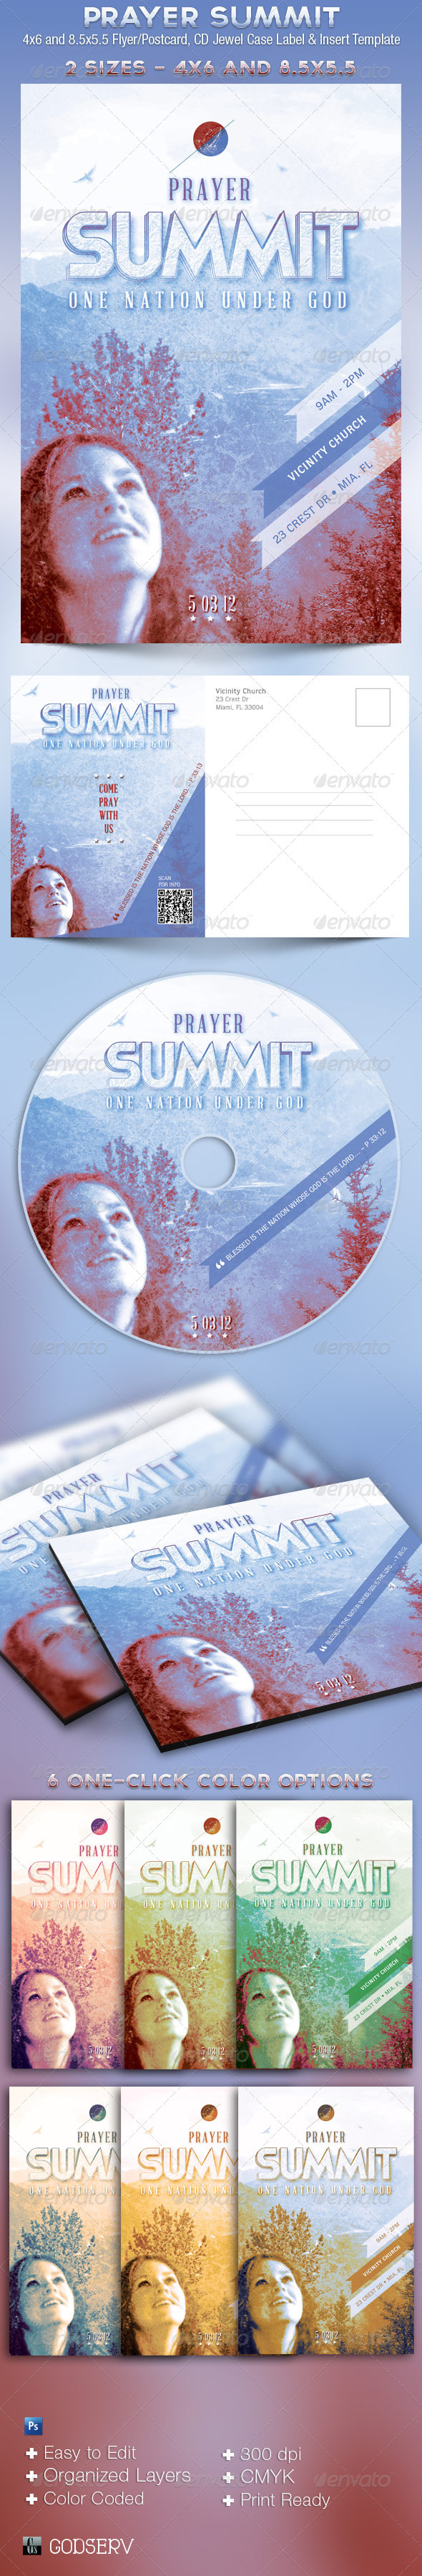 Prayer Summit Church Flyer CD Template - Church Flyers